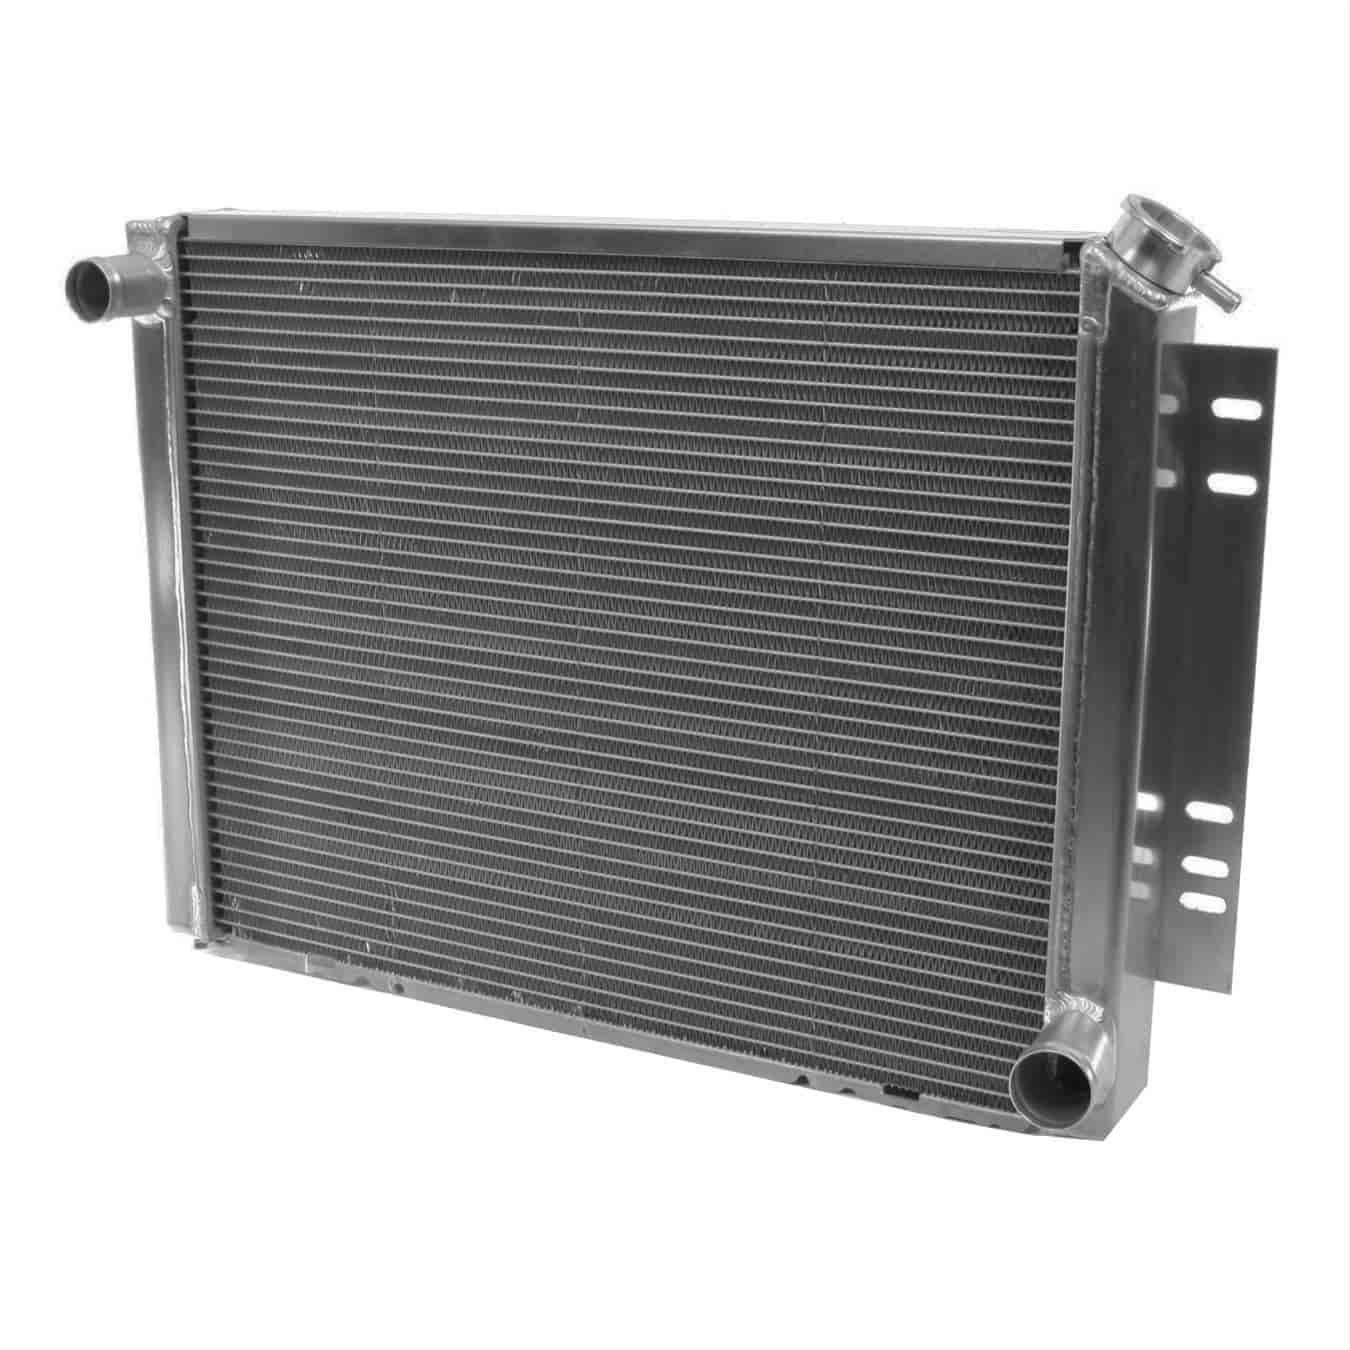 Be Cool Radiators 10016 - Be Cool Aluminator Series Direct-Fit Aluminum Radiators